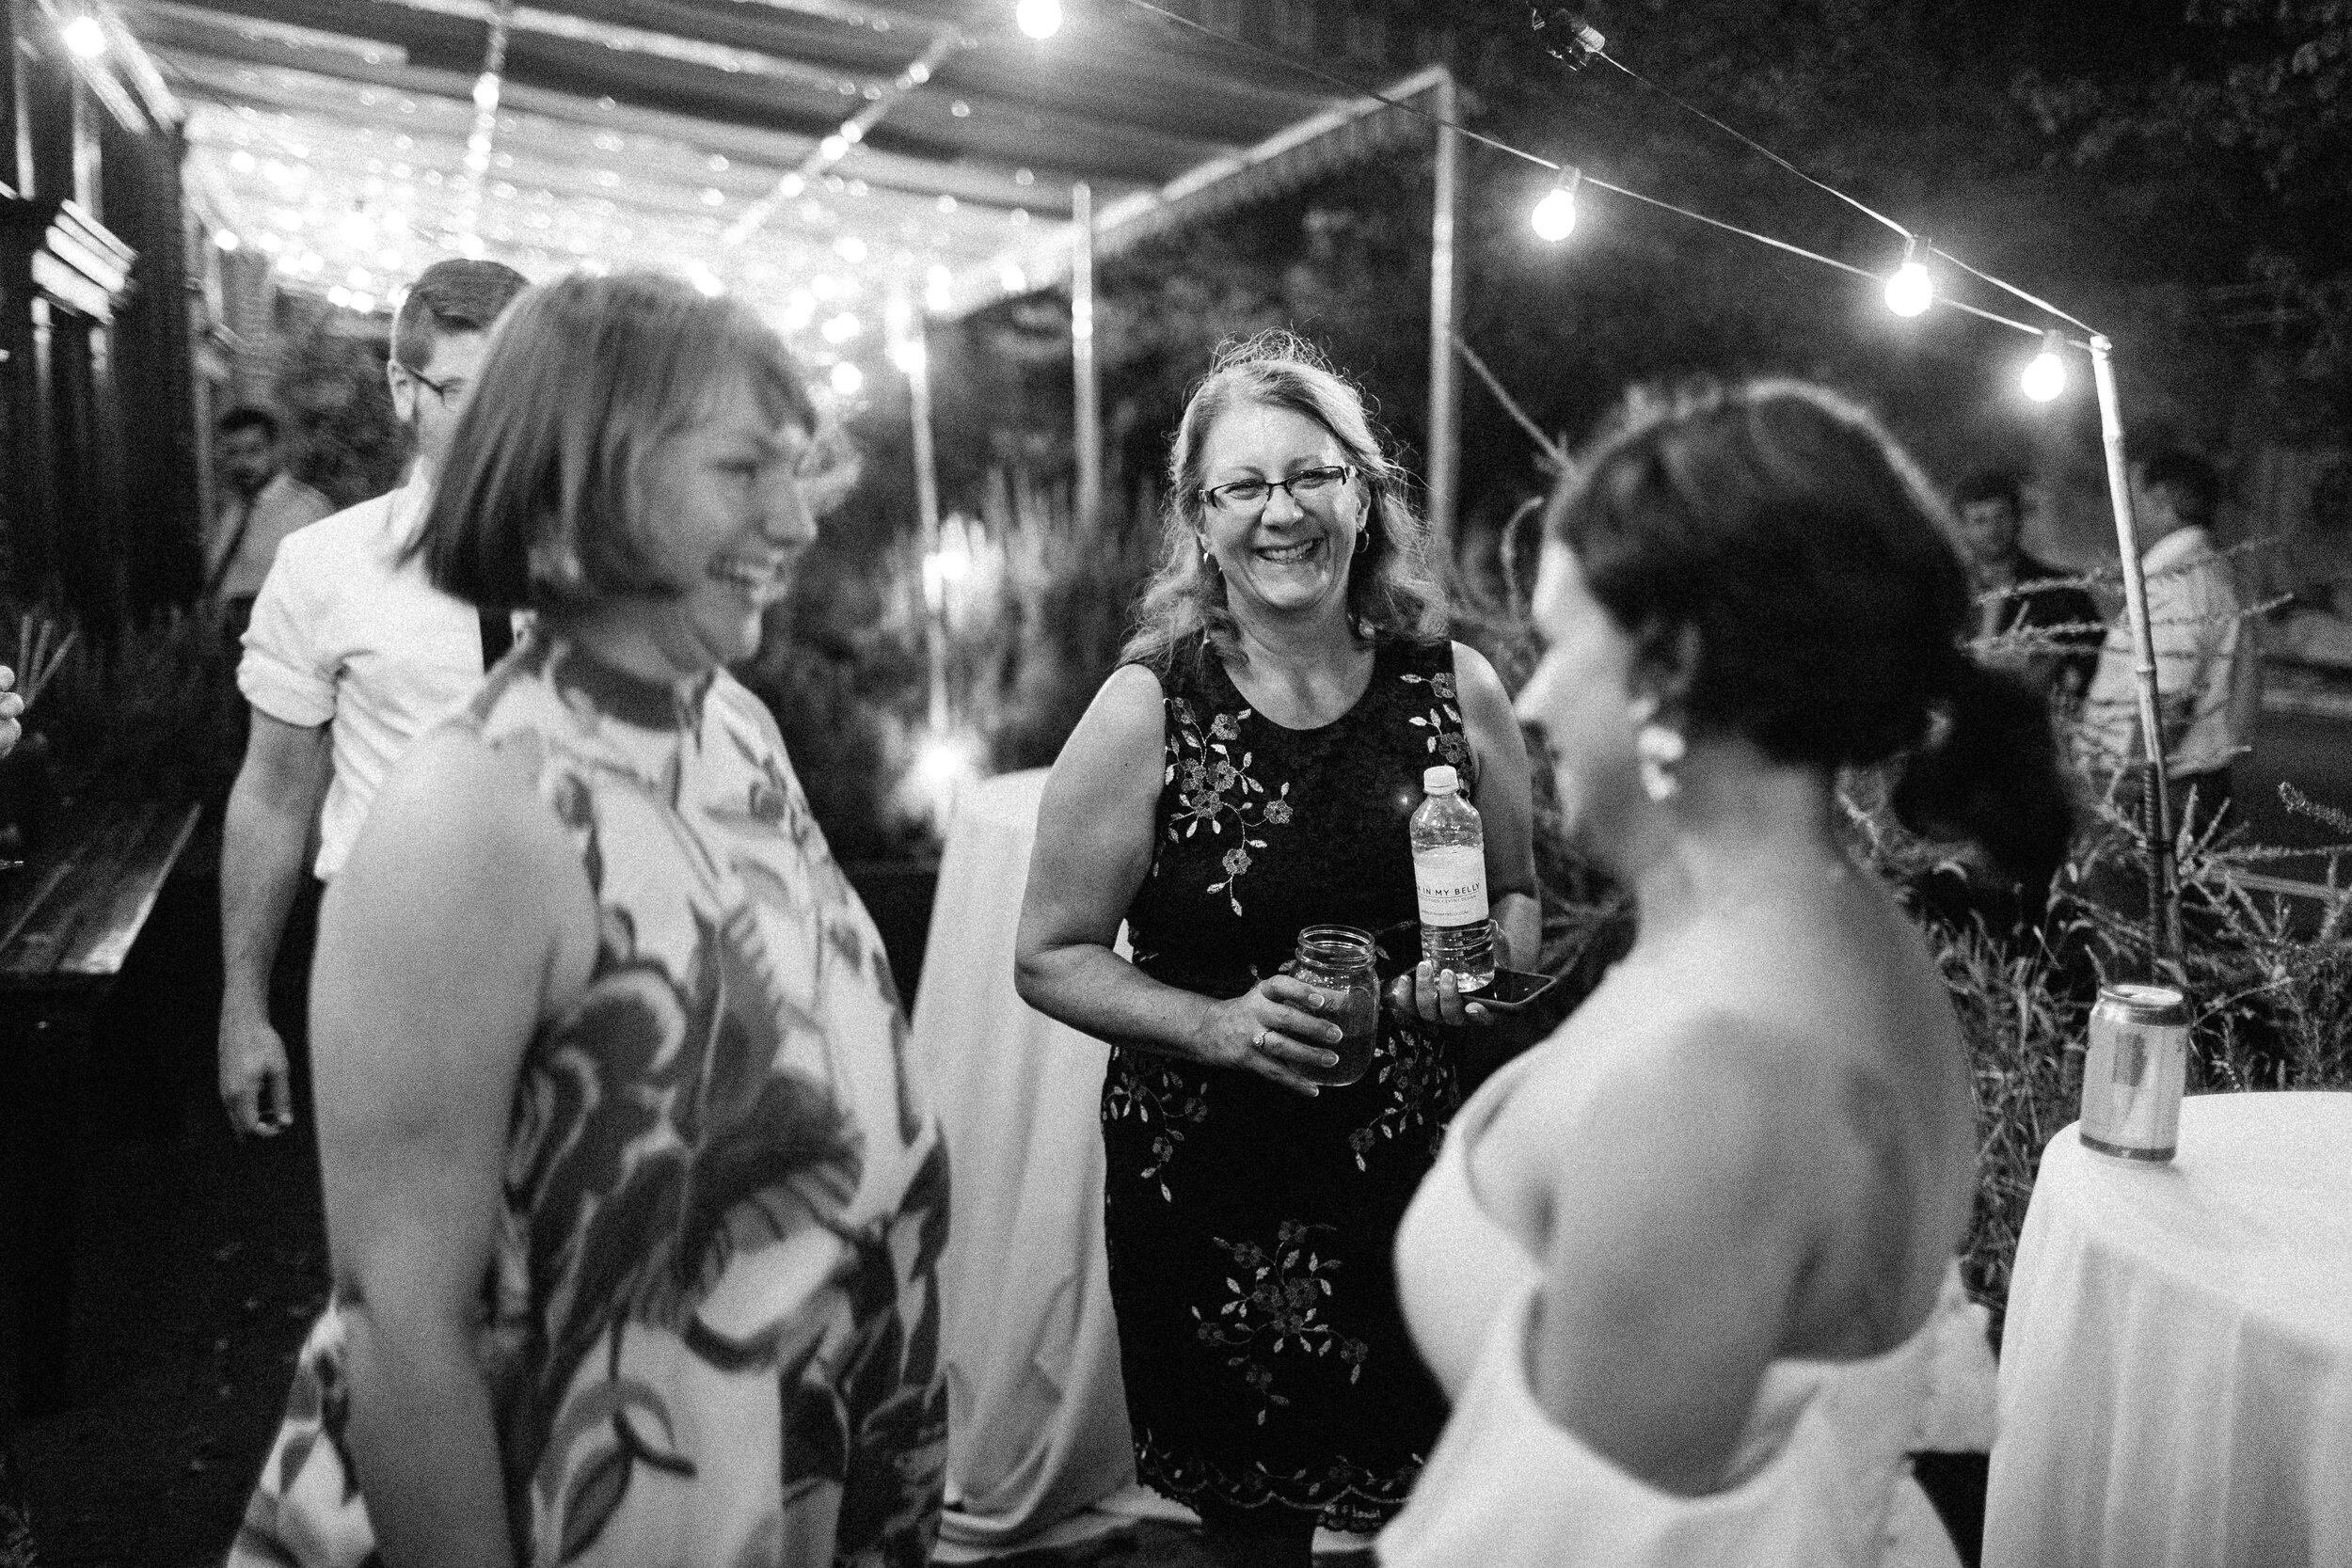 backyard_sun_in_my_belly_wedding_diy_at_home_atlanta_inman_park_arty_photographer_2269.jpg